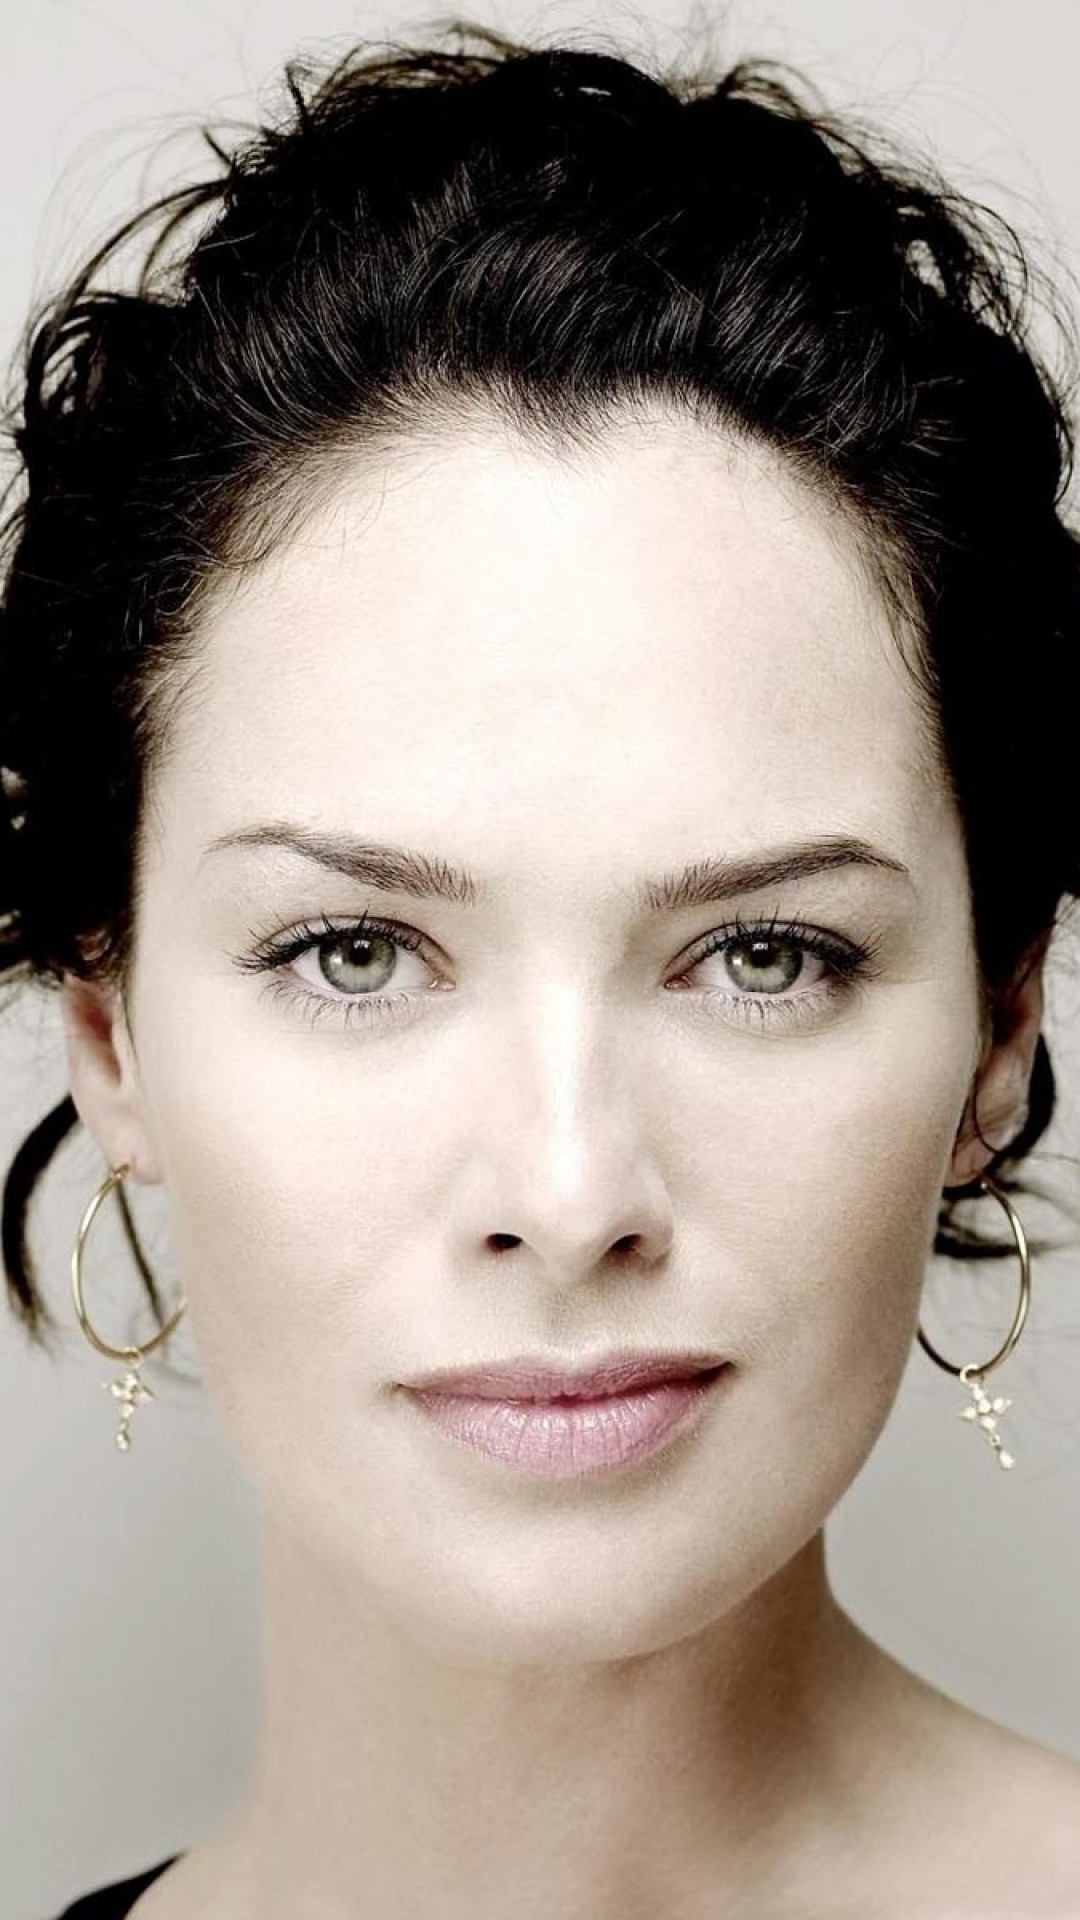 Lena Headey Portrait Wallpaper for SAMSUNG Galaxy Note 3